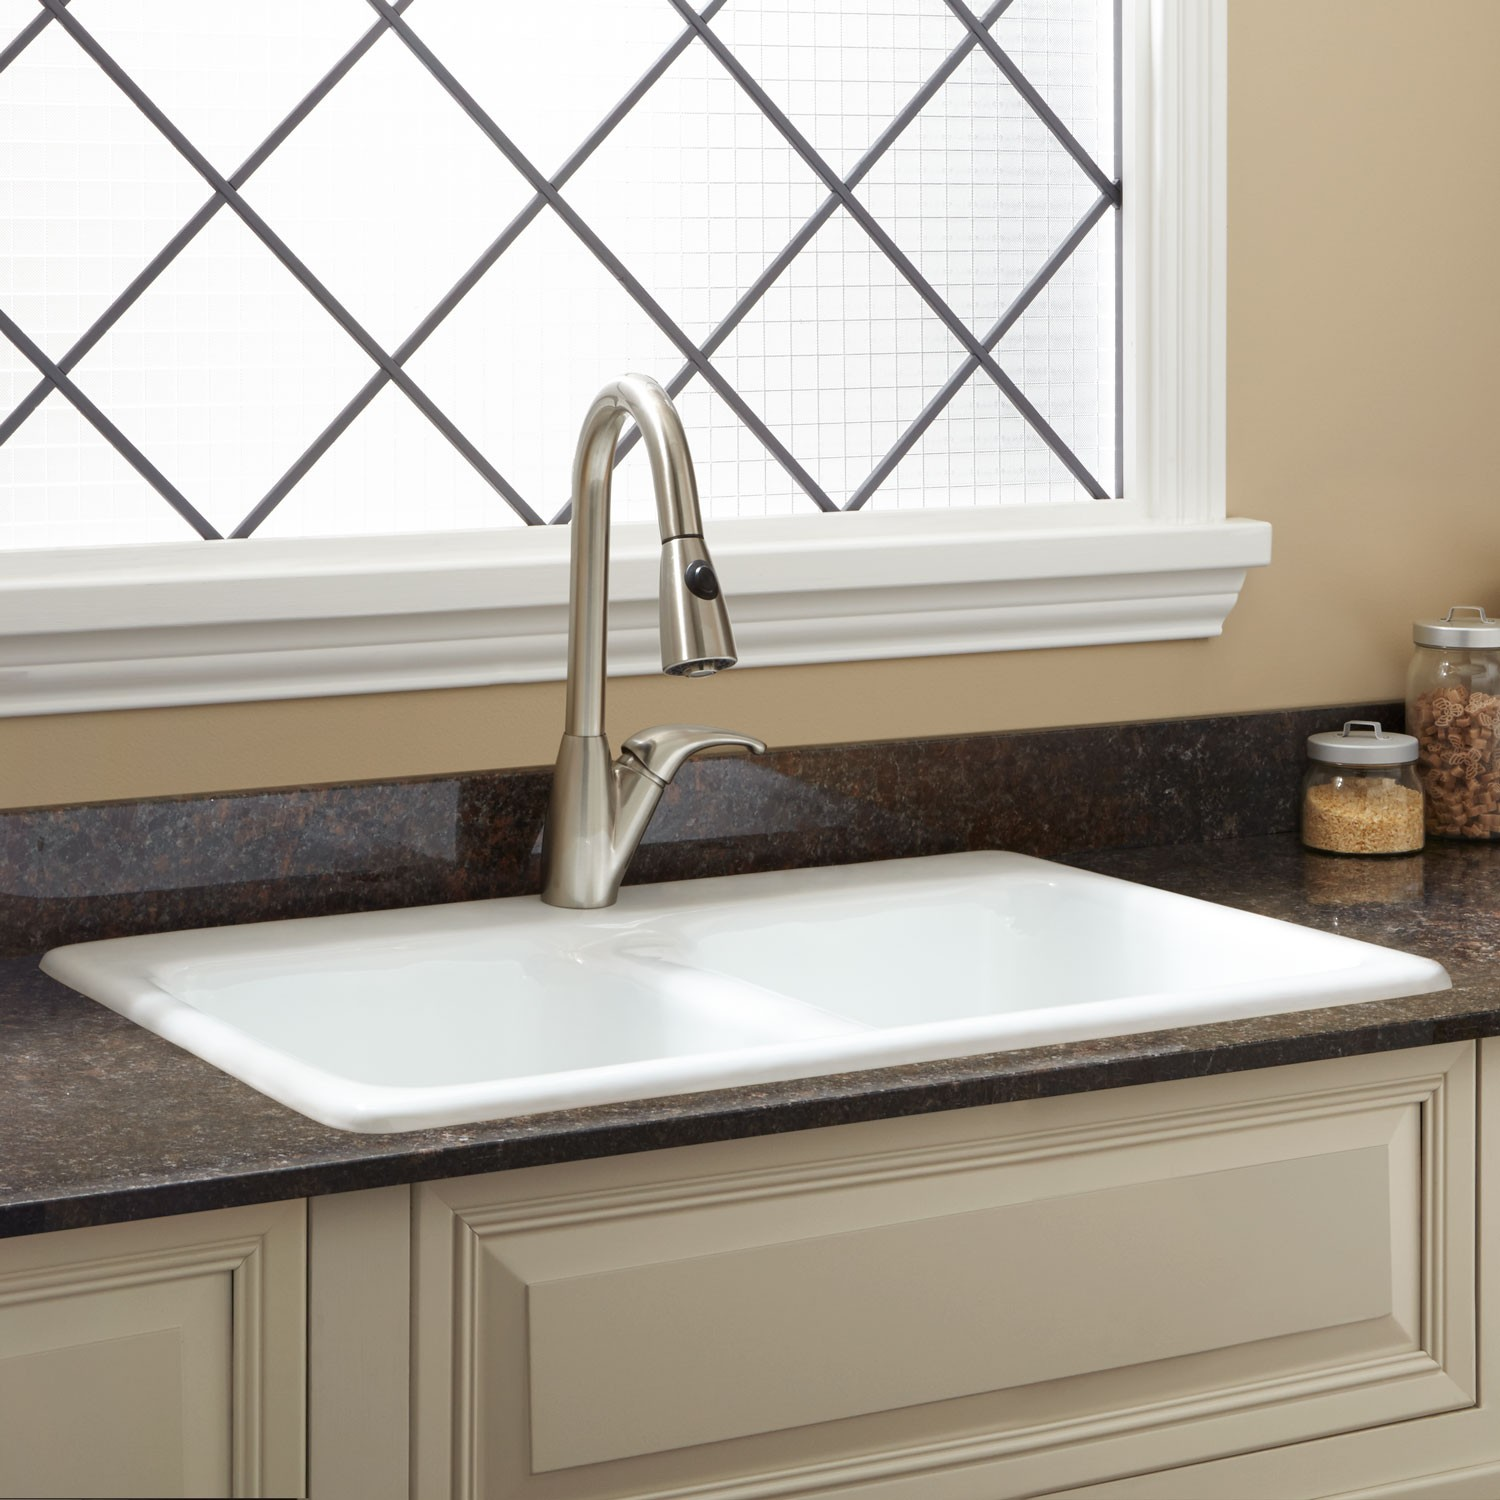 394657-double-cast-iron-kitchen-sink